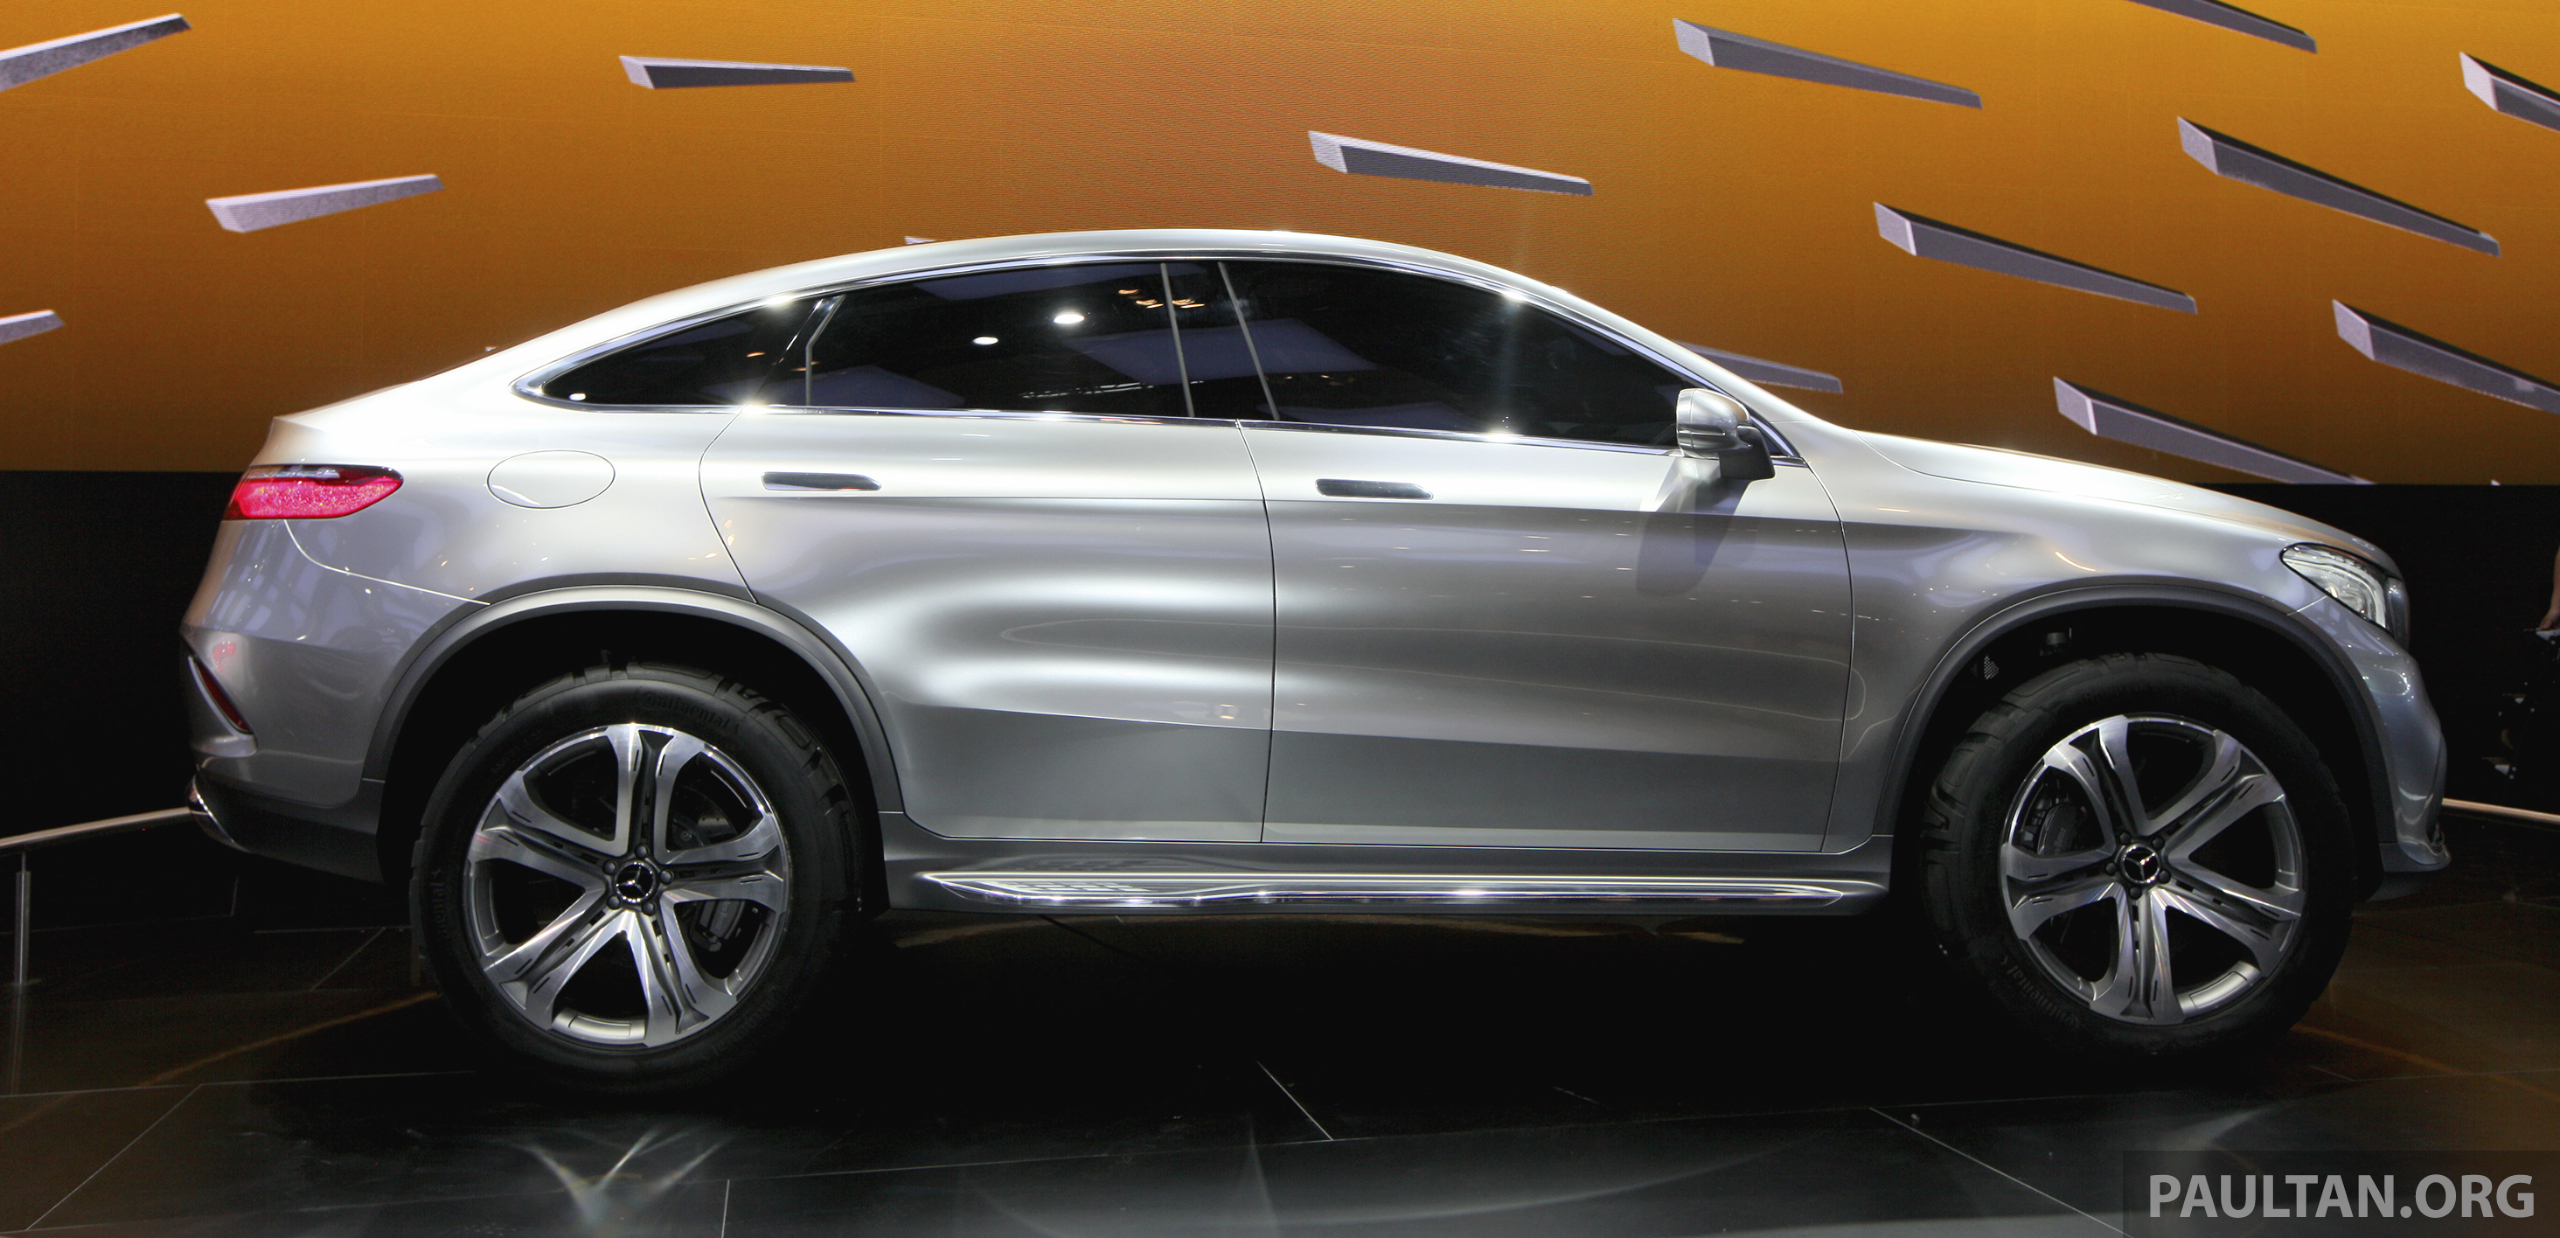 Mercedes benz coupe suv concept previews x6 rival image 242816 for Pictures of mercedes benz suv